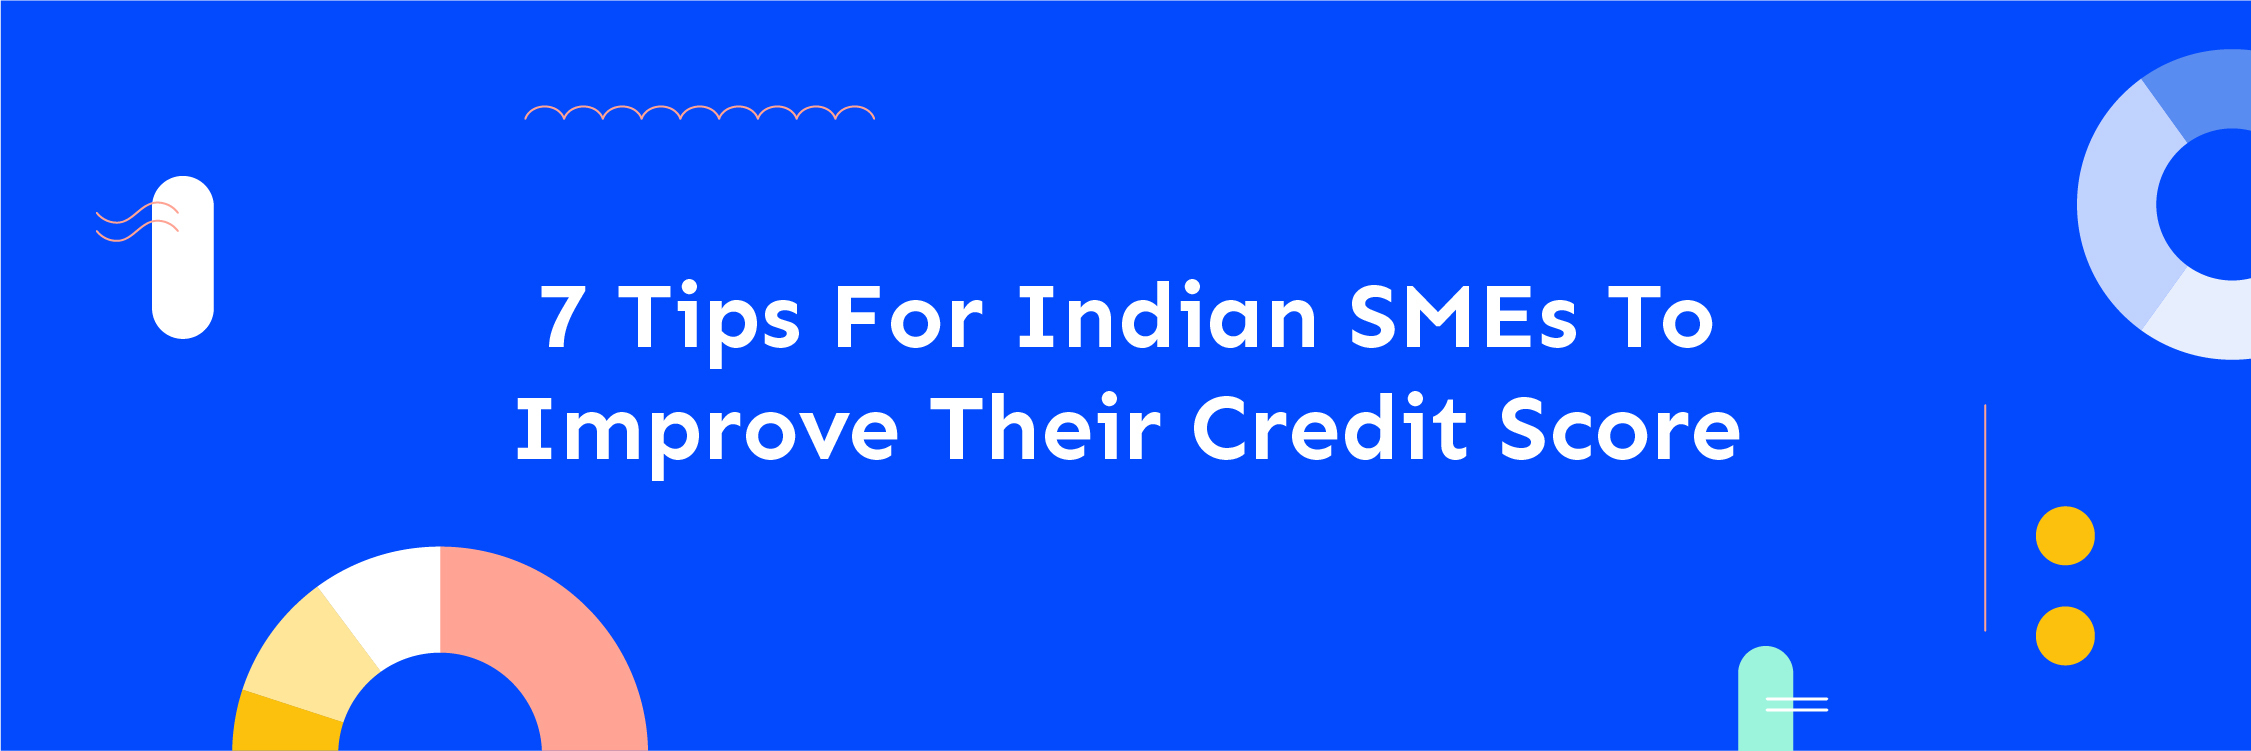 7 Expert Tips for SMEs to Improve Their Credit Score